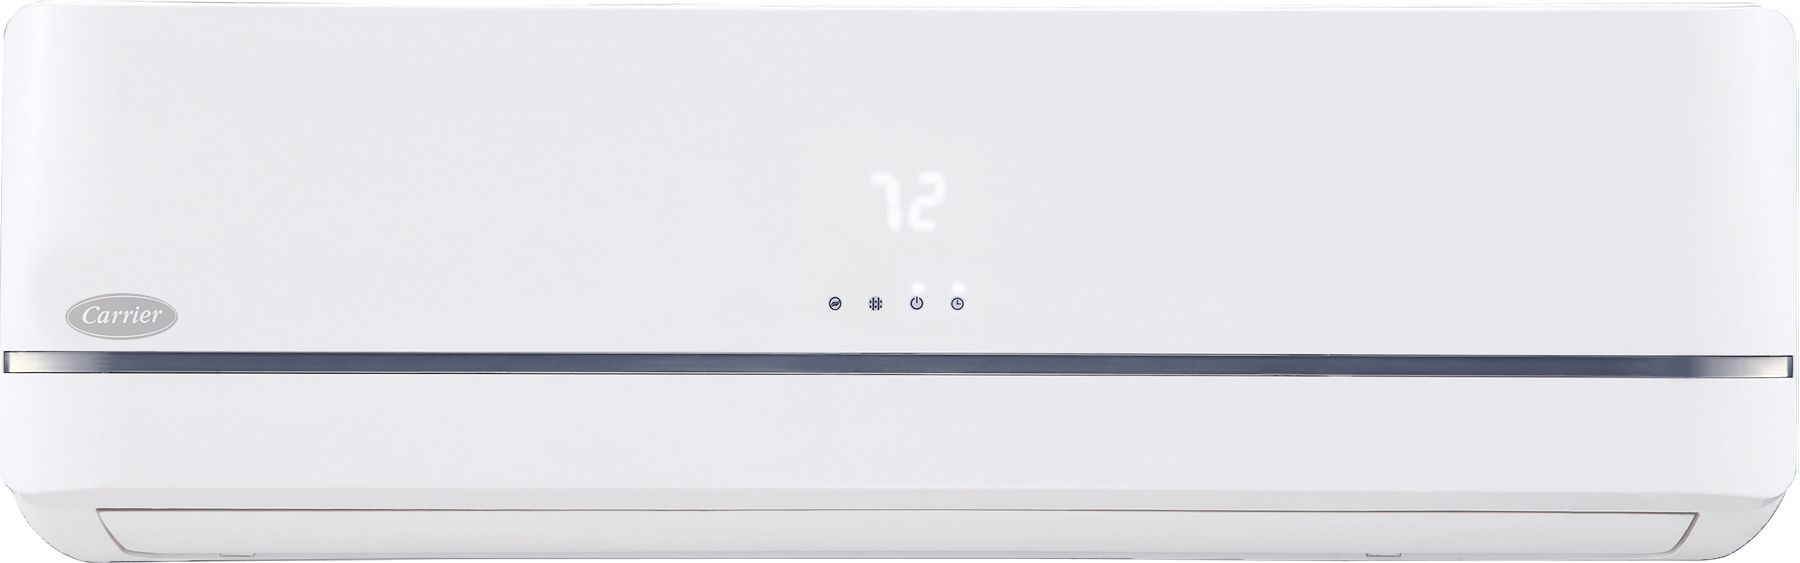 Carrier Ductless Mini Split System Capable Of Both Heating